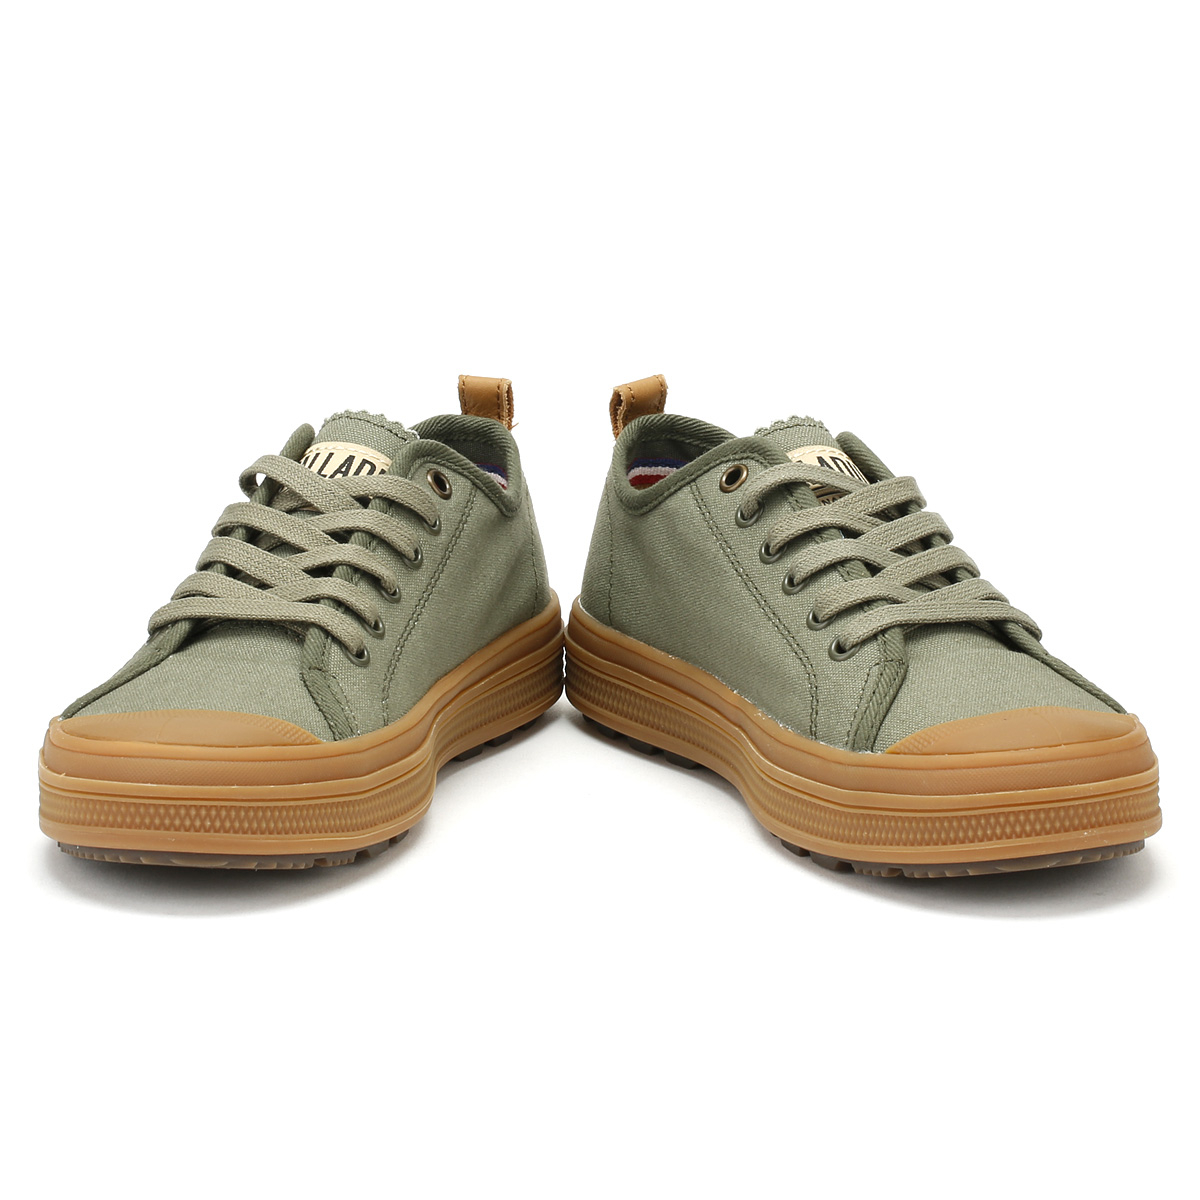 Palladium Mens Trainers Gum Olive Night & Mid Gum Trainers S_U_B Low Canvas Lace Up Schuhes 7e3139